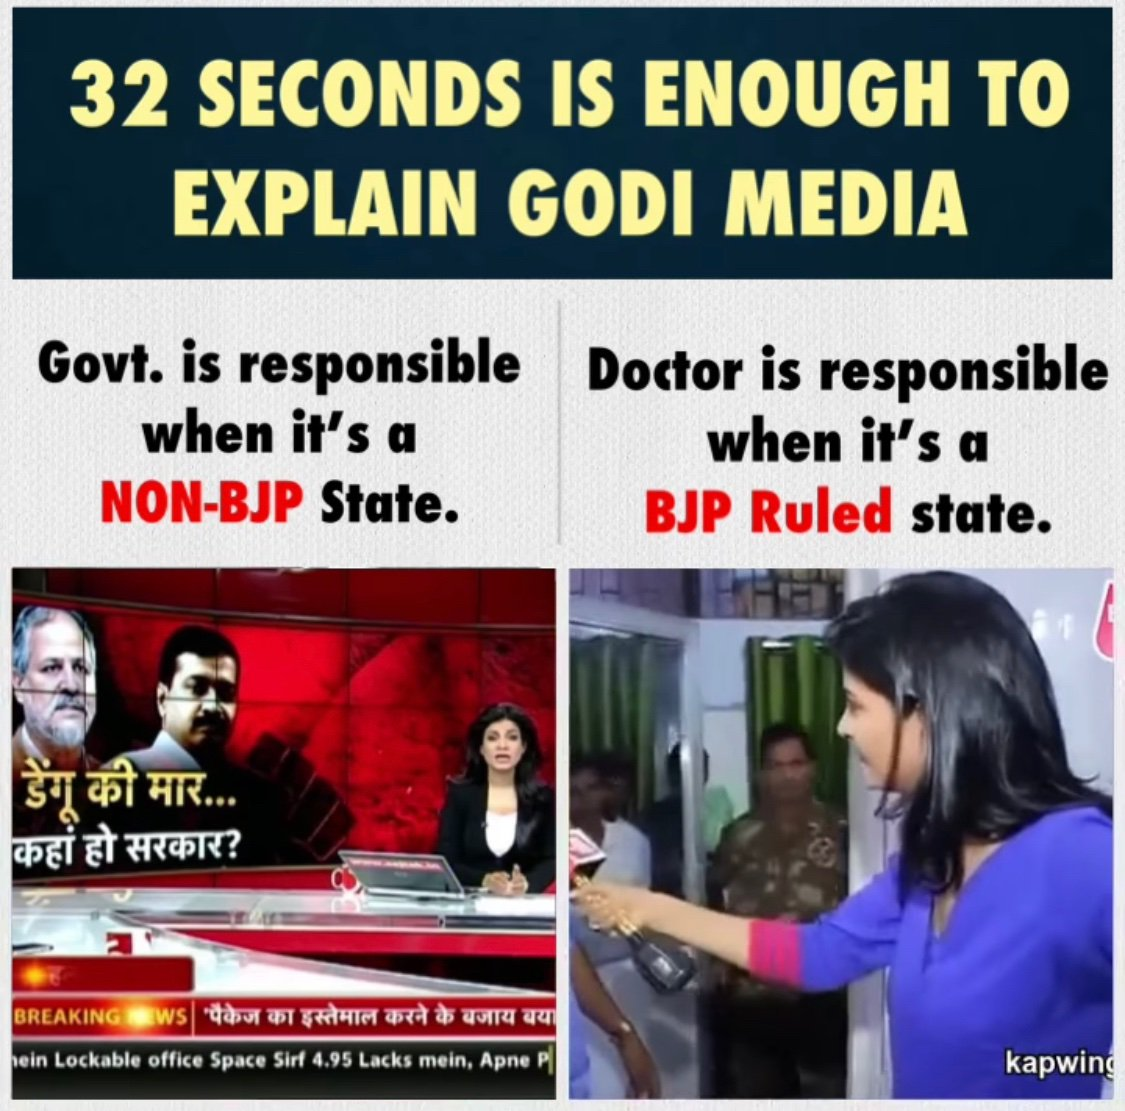 She went to fight  with doctors , sense less lady , let her go and fight with government who doesn't have enough facility and technology, and health care members, she needs a new qualification on journalisms to behave #shameonanjanaomkashyap<br>http://pic.twitter.com/bygGHmocY1